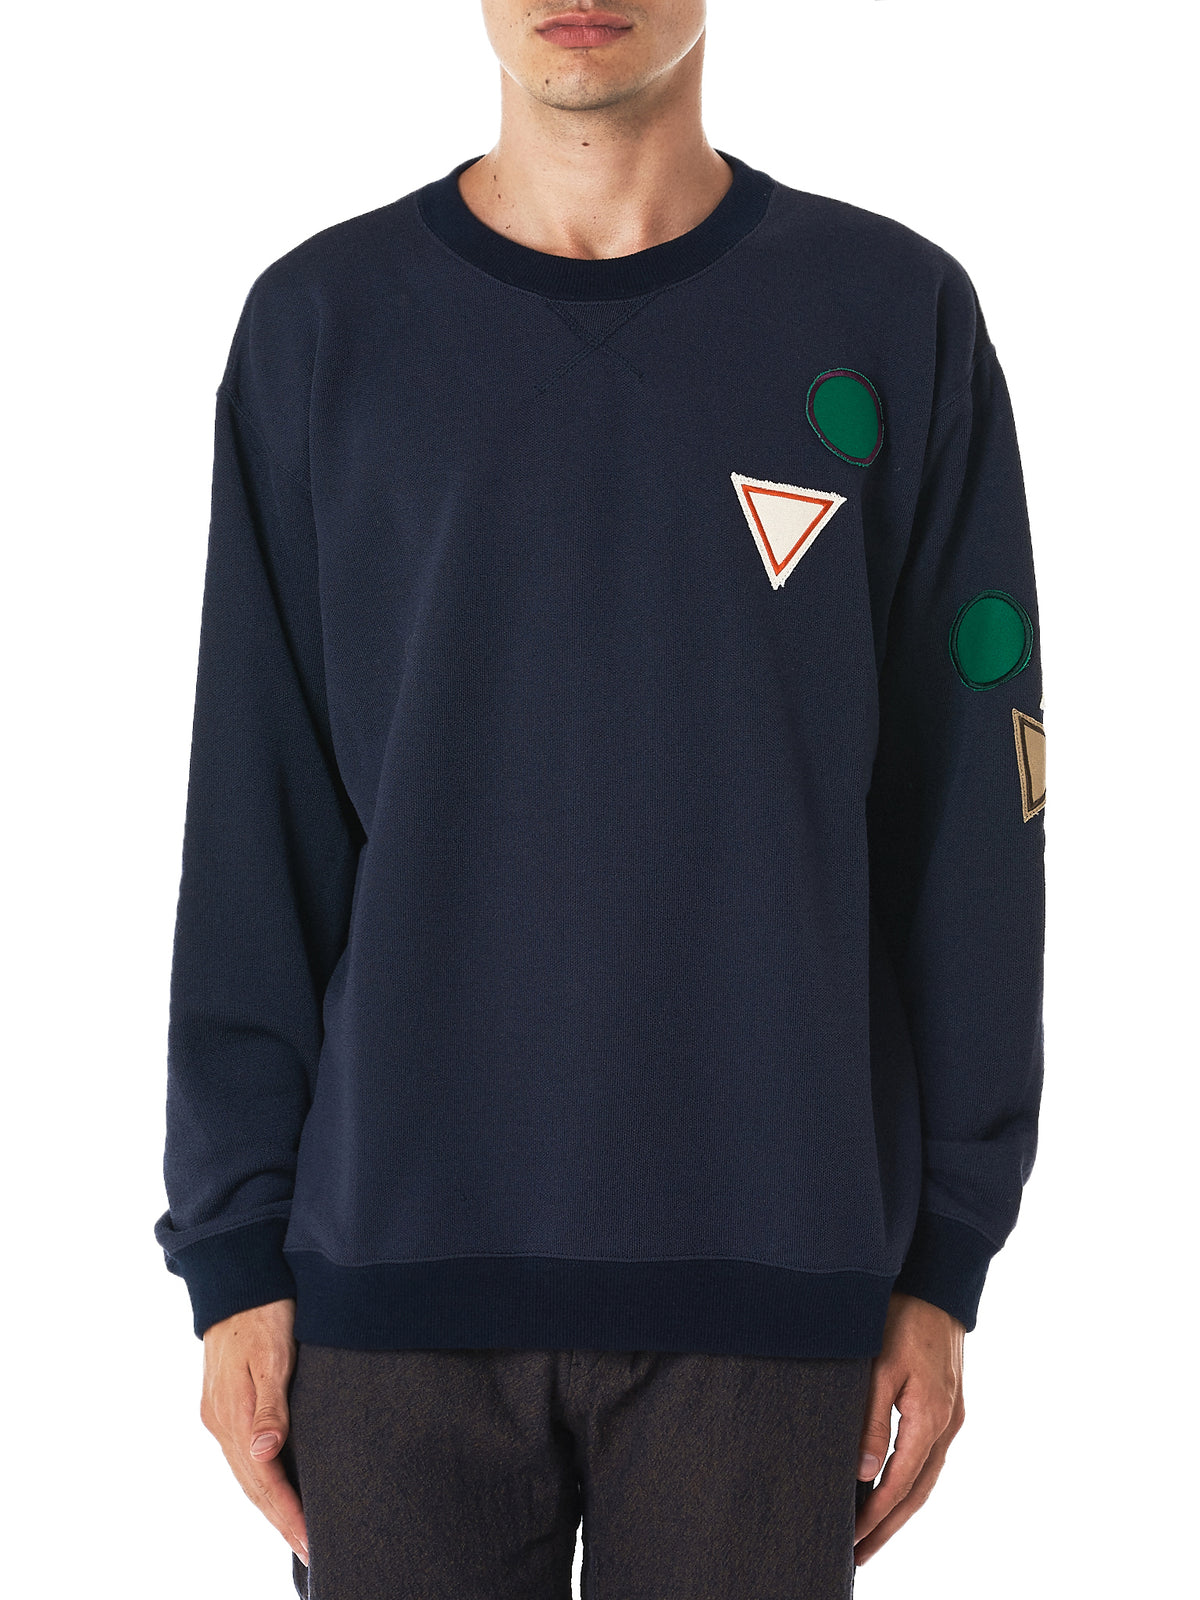 Embroidery Crewneck Sweater (TMF-1718-NAVY-MULTI)